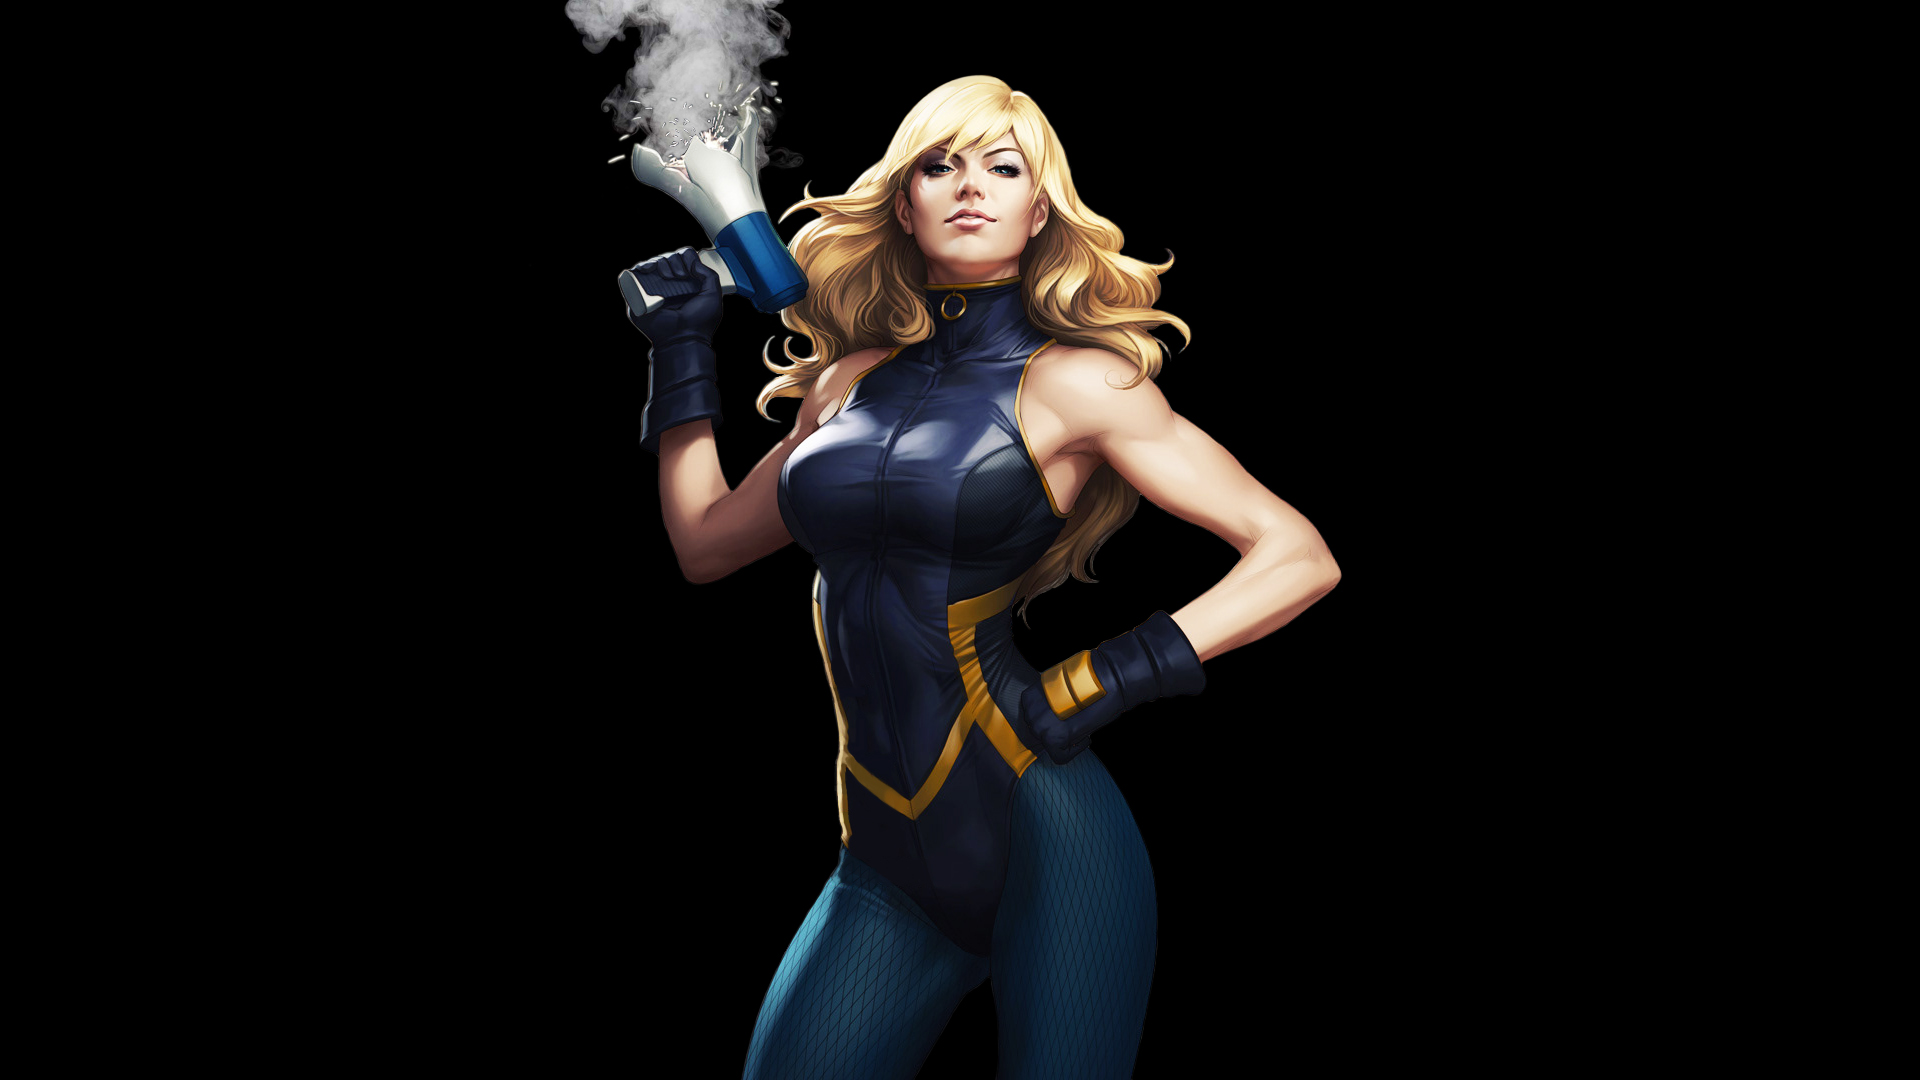 3d Superhero Wallpaper For Android Black Canary Hd Artist 4k Wallpapers Images